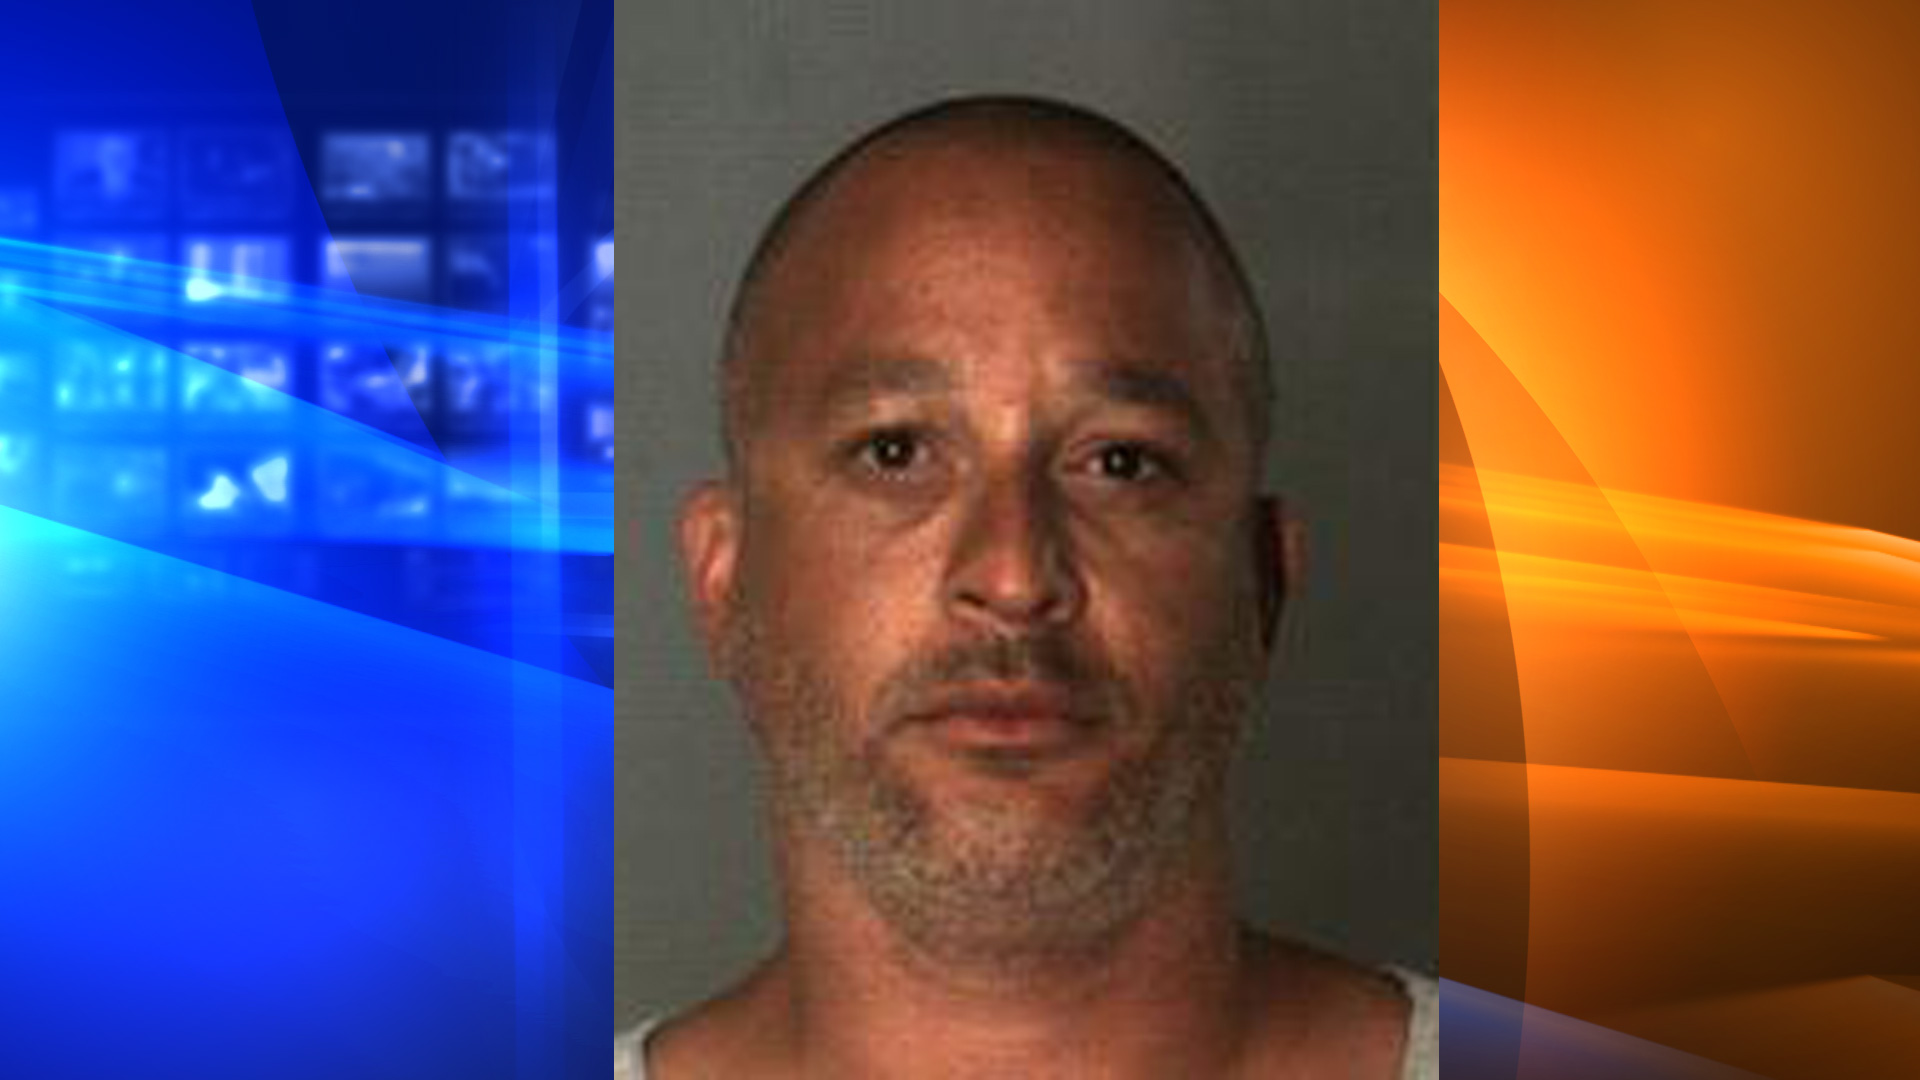 Gerad Bullard is seen in a booking photo provided by the San Bernardino County Sheriff's Department on July 14, 2020.